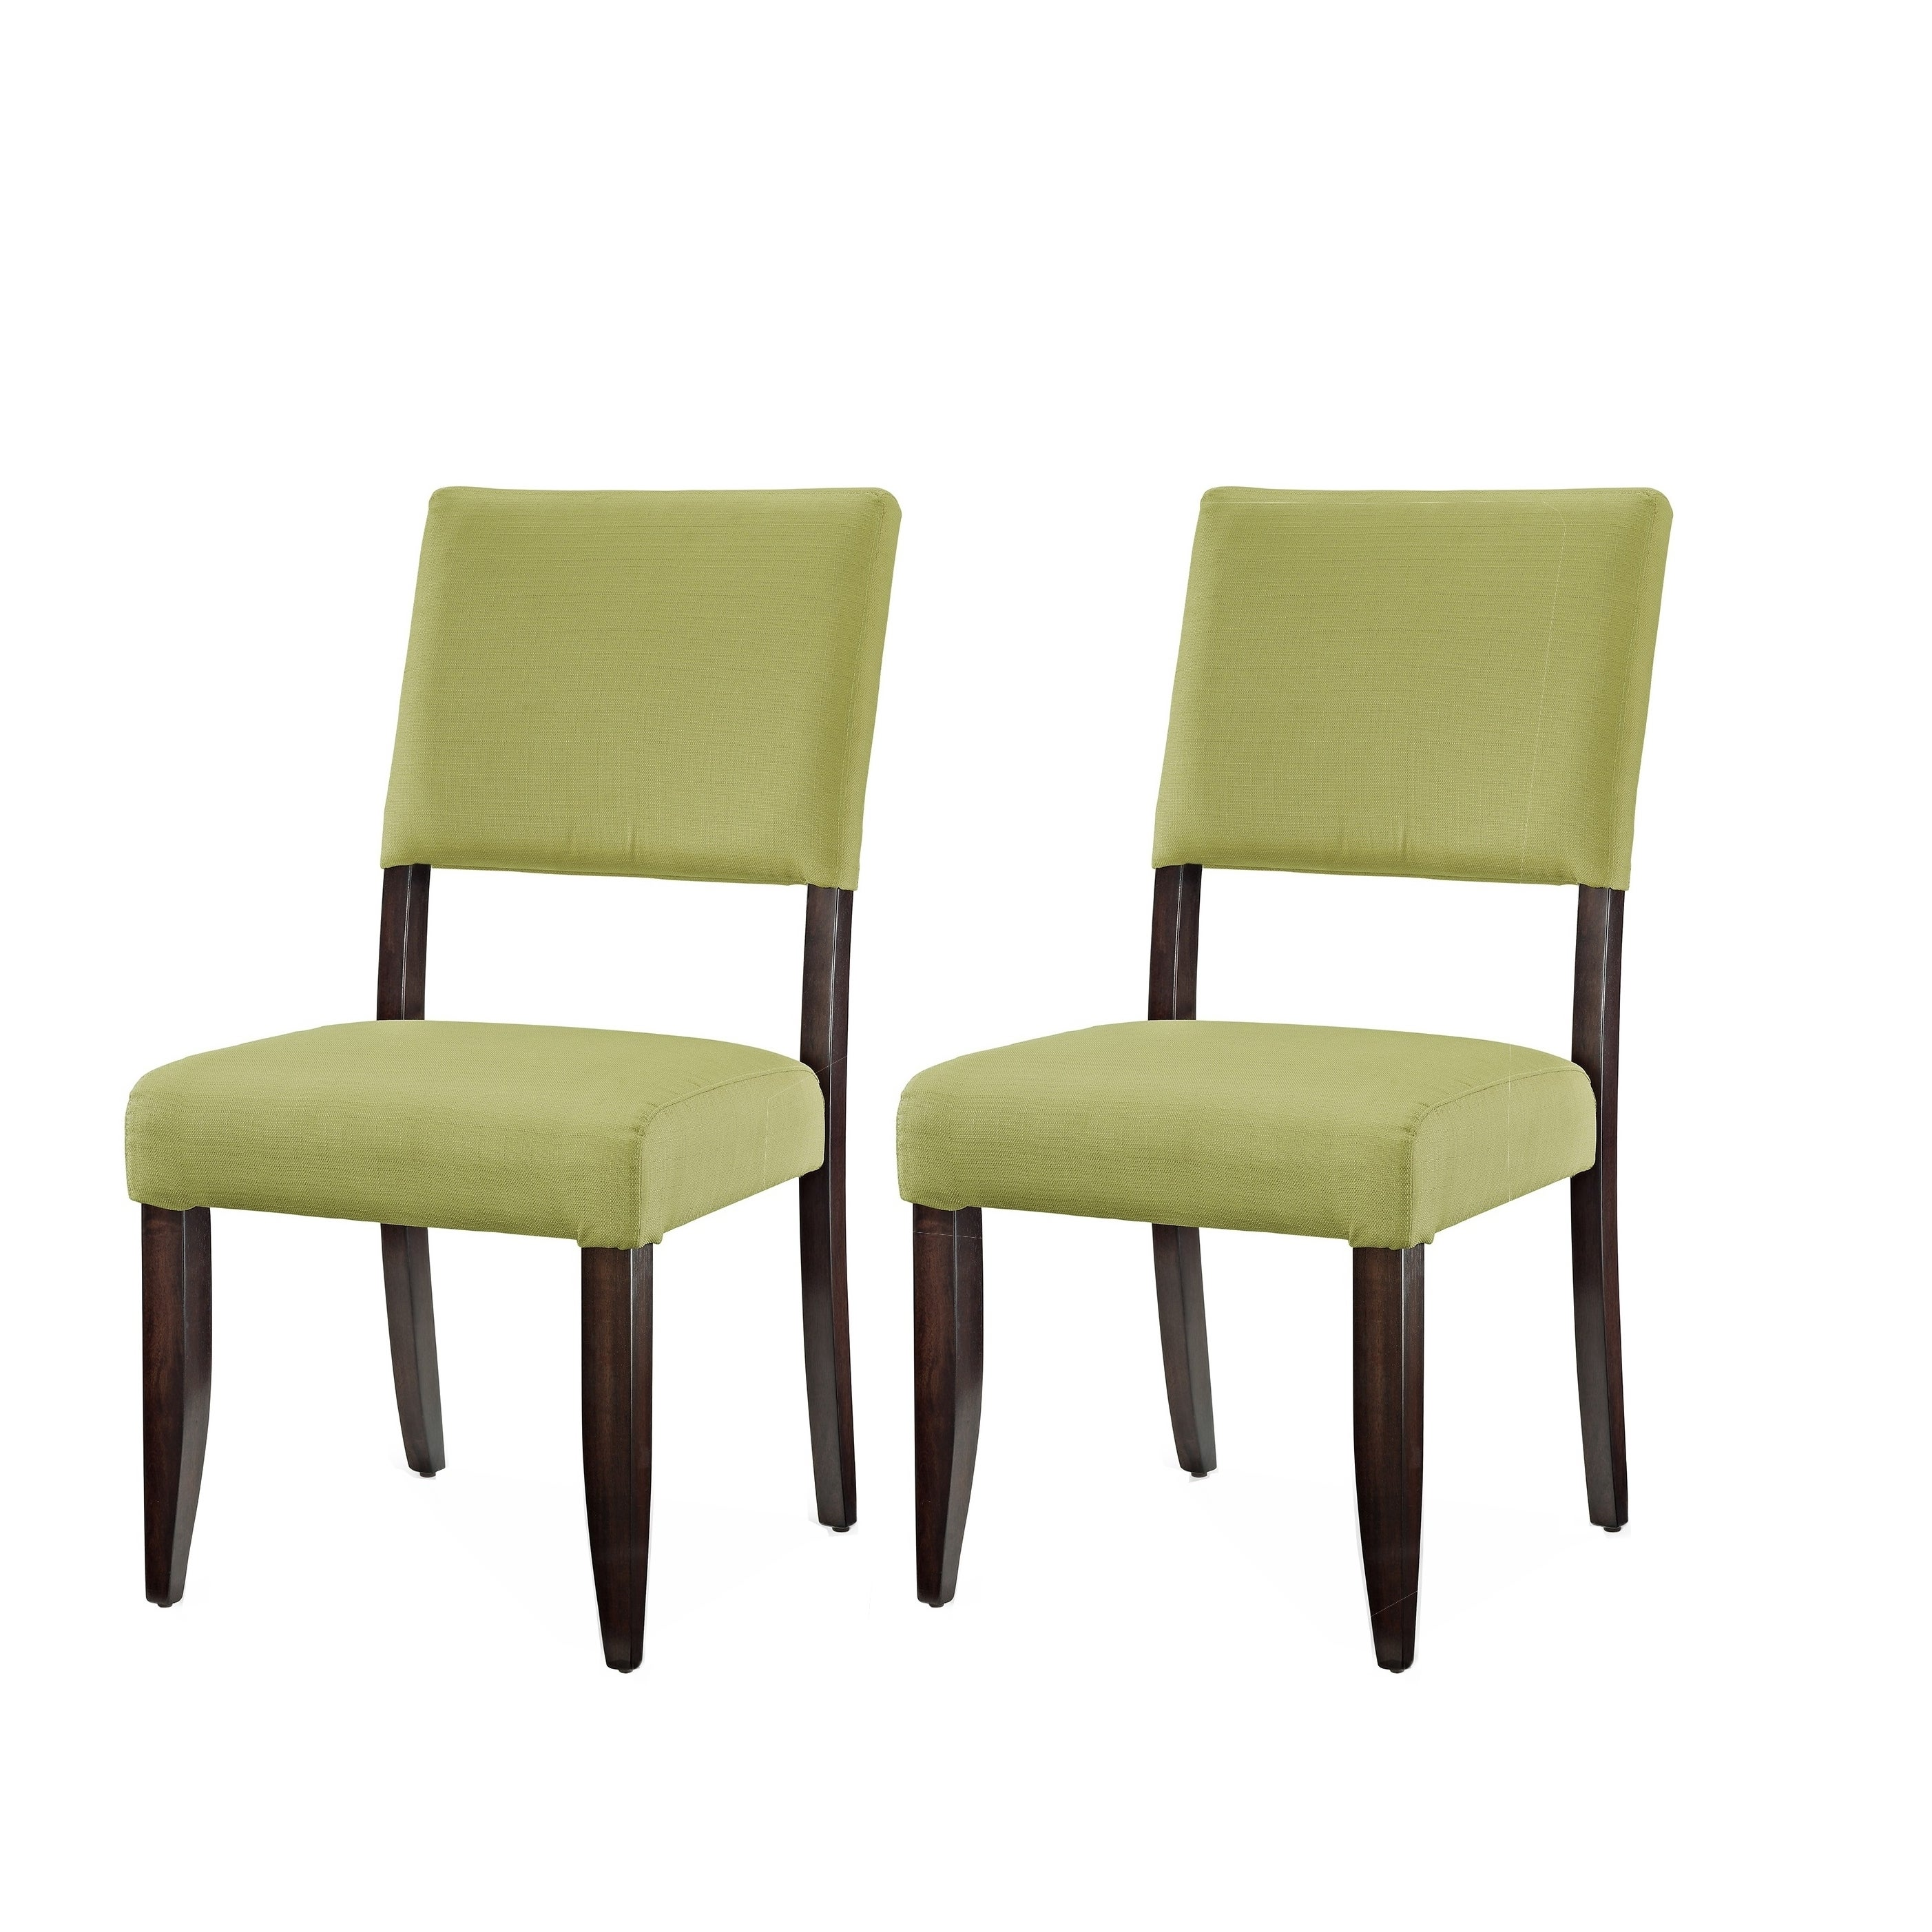 Greyson Living Tori Avocado Green Dining Chair Set Of 2 Overstock 11915430